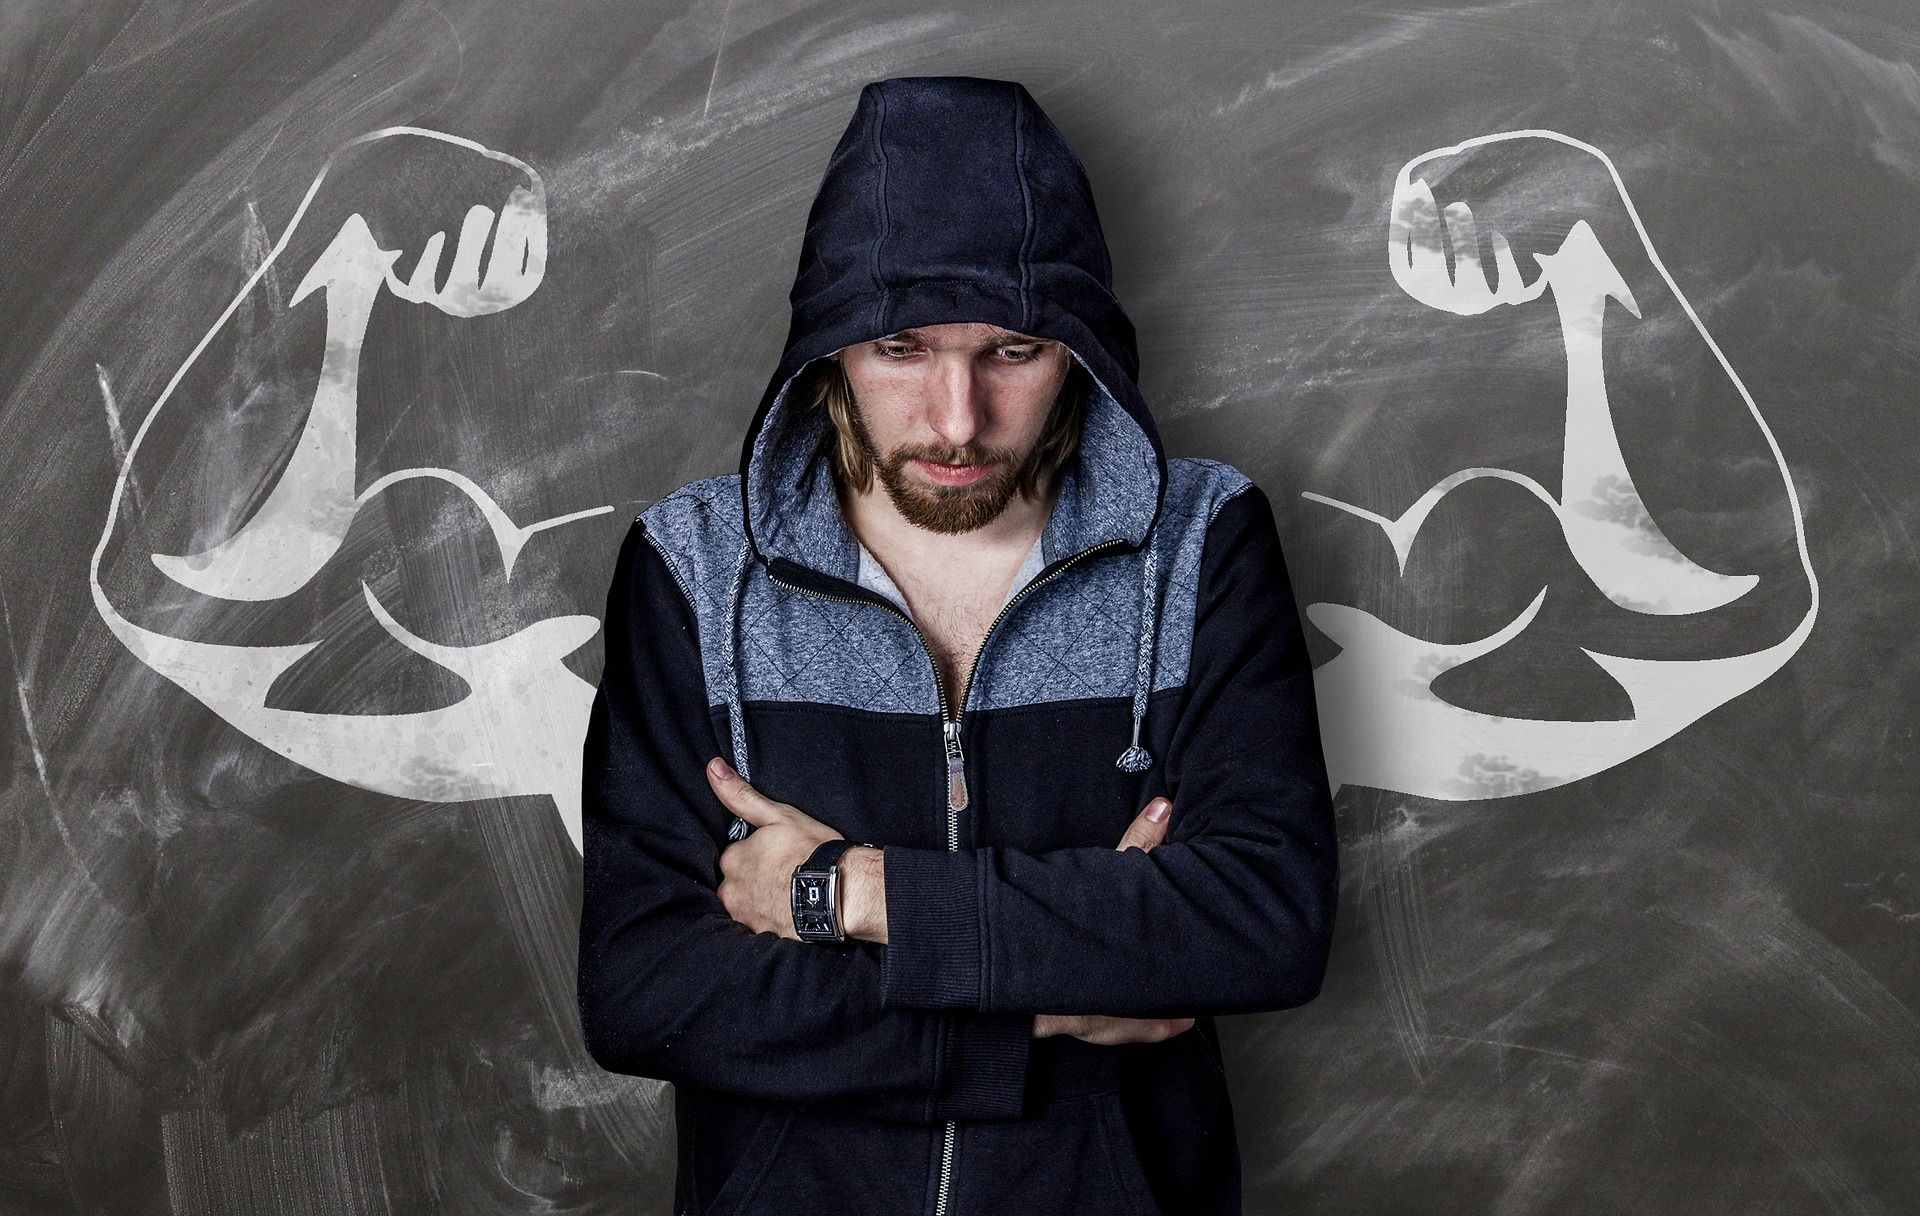 Man with drawing of strong arms behind him. Represents addiction relapse not being the end.